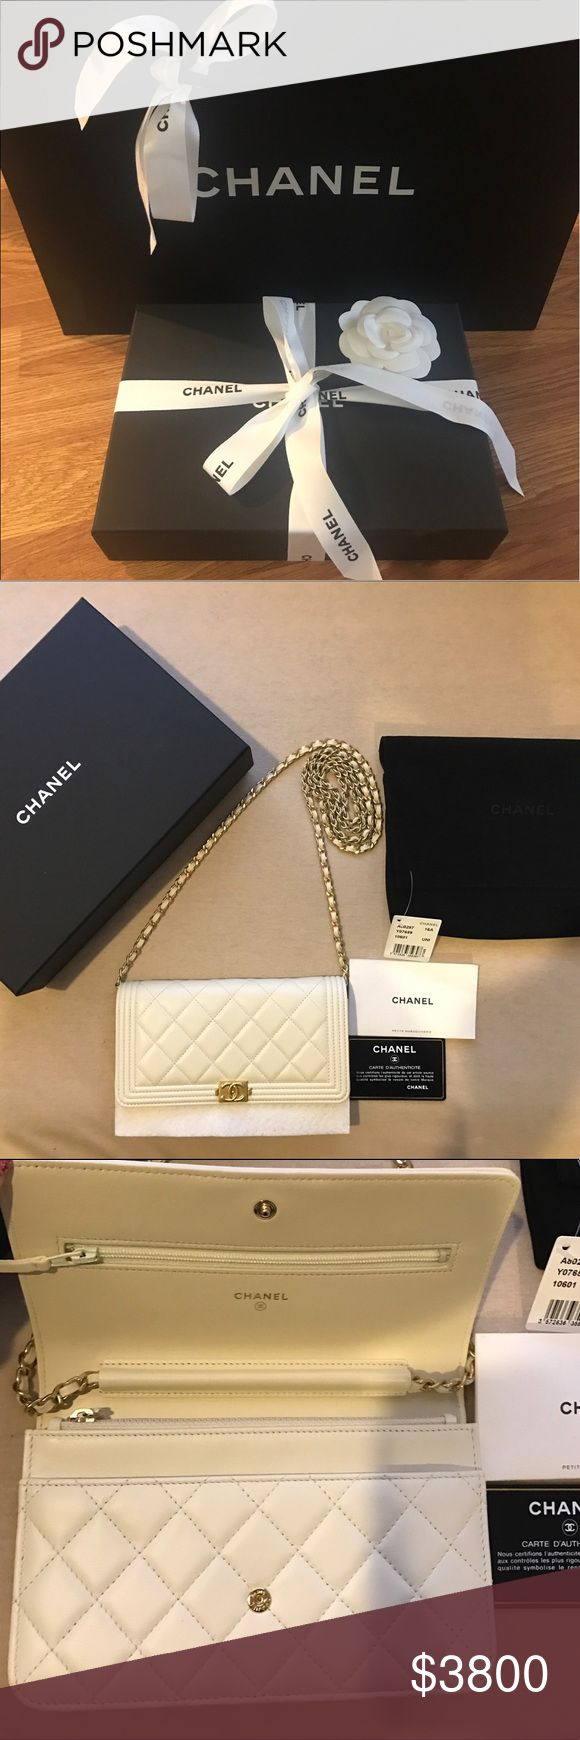 NWTIB-Chanel Boy Ivory&Gold WOC 2016 RARE LIMTD ED Wrapped up in original box and packaging. Will also ship the Chanel shopping bag upon request. This is a super rare colorway of the Classic Boy Wallet on Chain in Lambskin leather. Brand New & Never been carried. Absolutely NO trades but ALWAYS willing to take an offer for a better price on 🅿️🅿️👨‍👩‍👧‍👧 or ✅ or as 2 separate listings on ♏️ CHANEL Bags Crossbody Bags